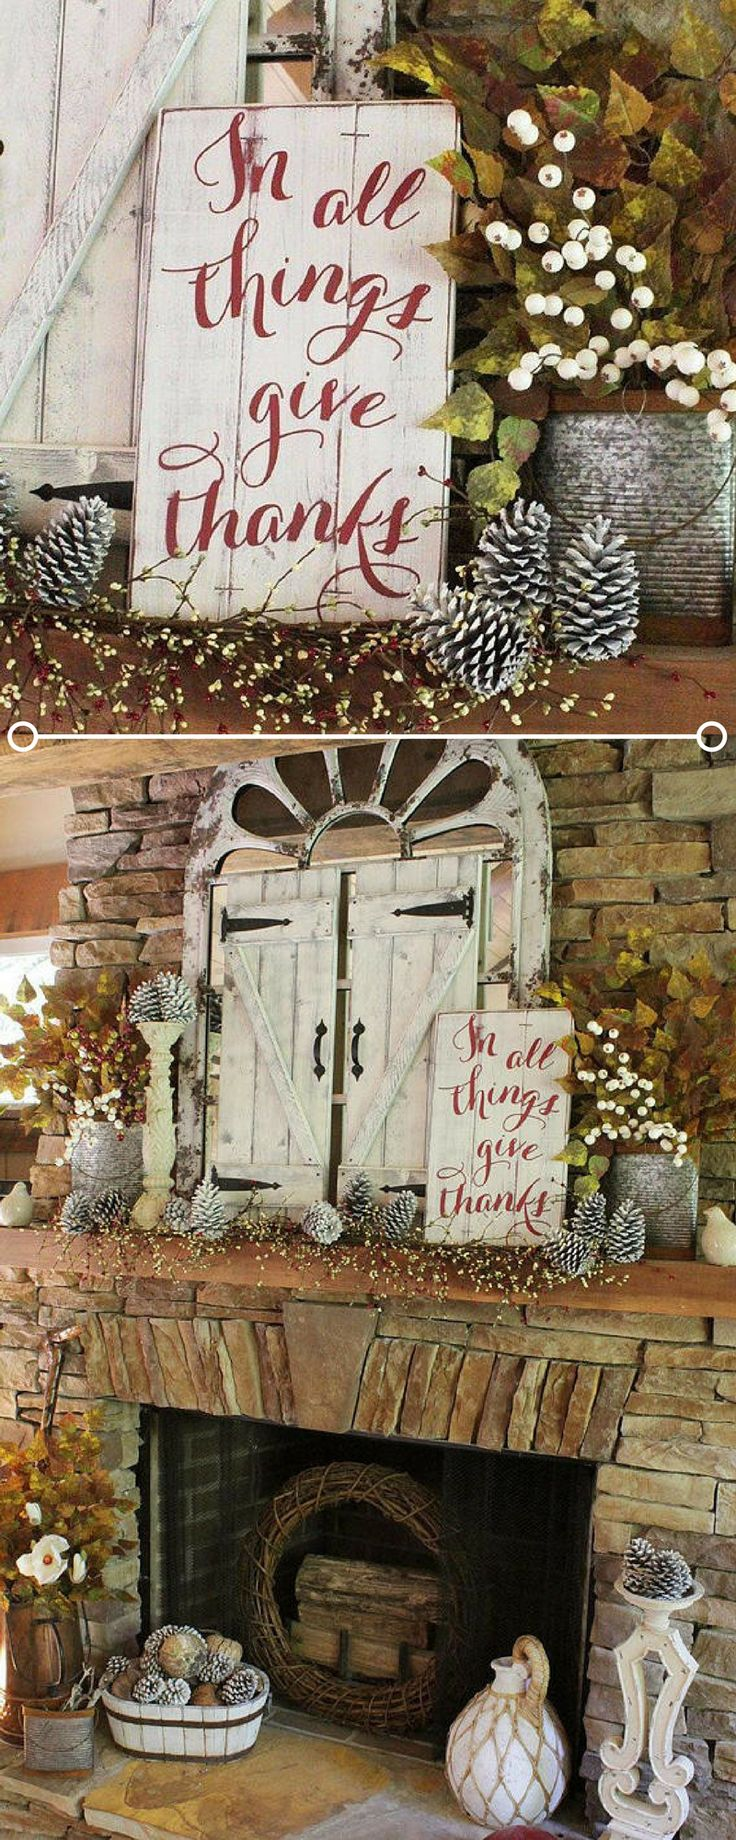 Christmas wooden christmas memories hanging sign sold out - In All Things Give Thanks I Love This Rustic Sign The Red Cursive Really Stands Out Against The White Distressed Wood Great Farmhouse Thanksgiving